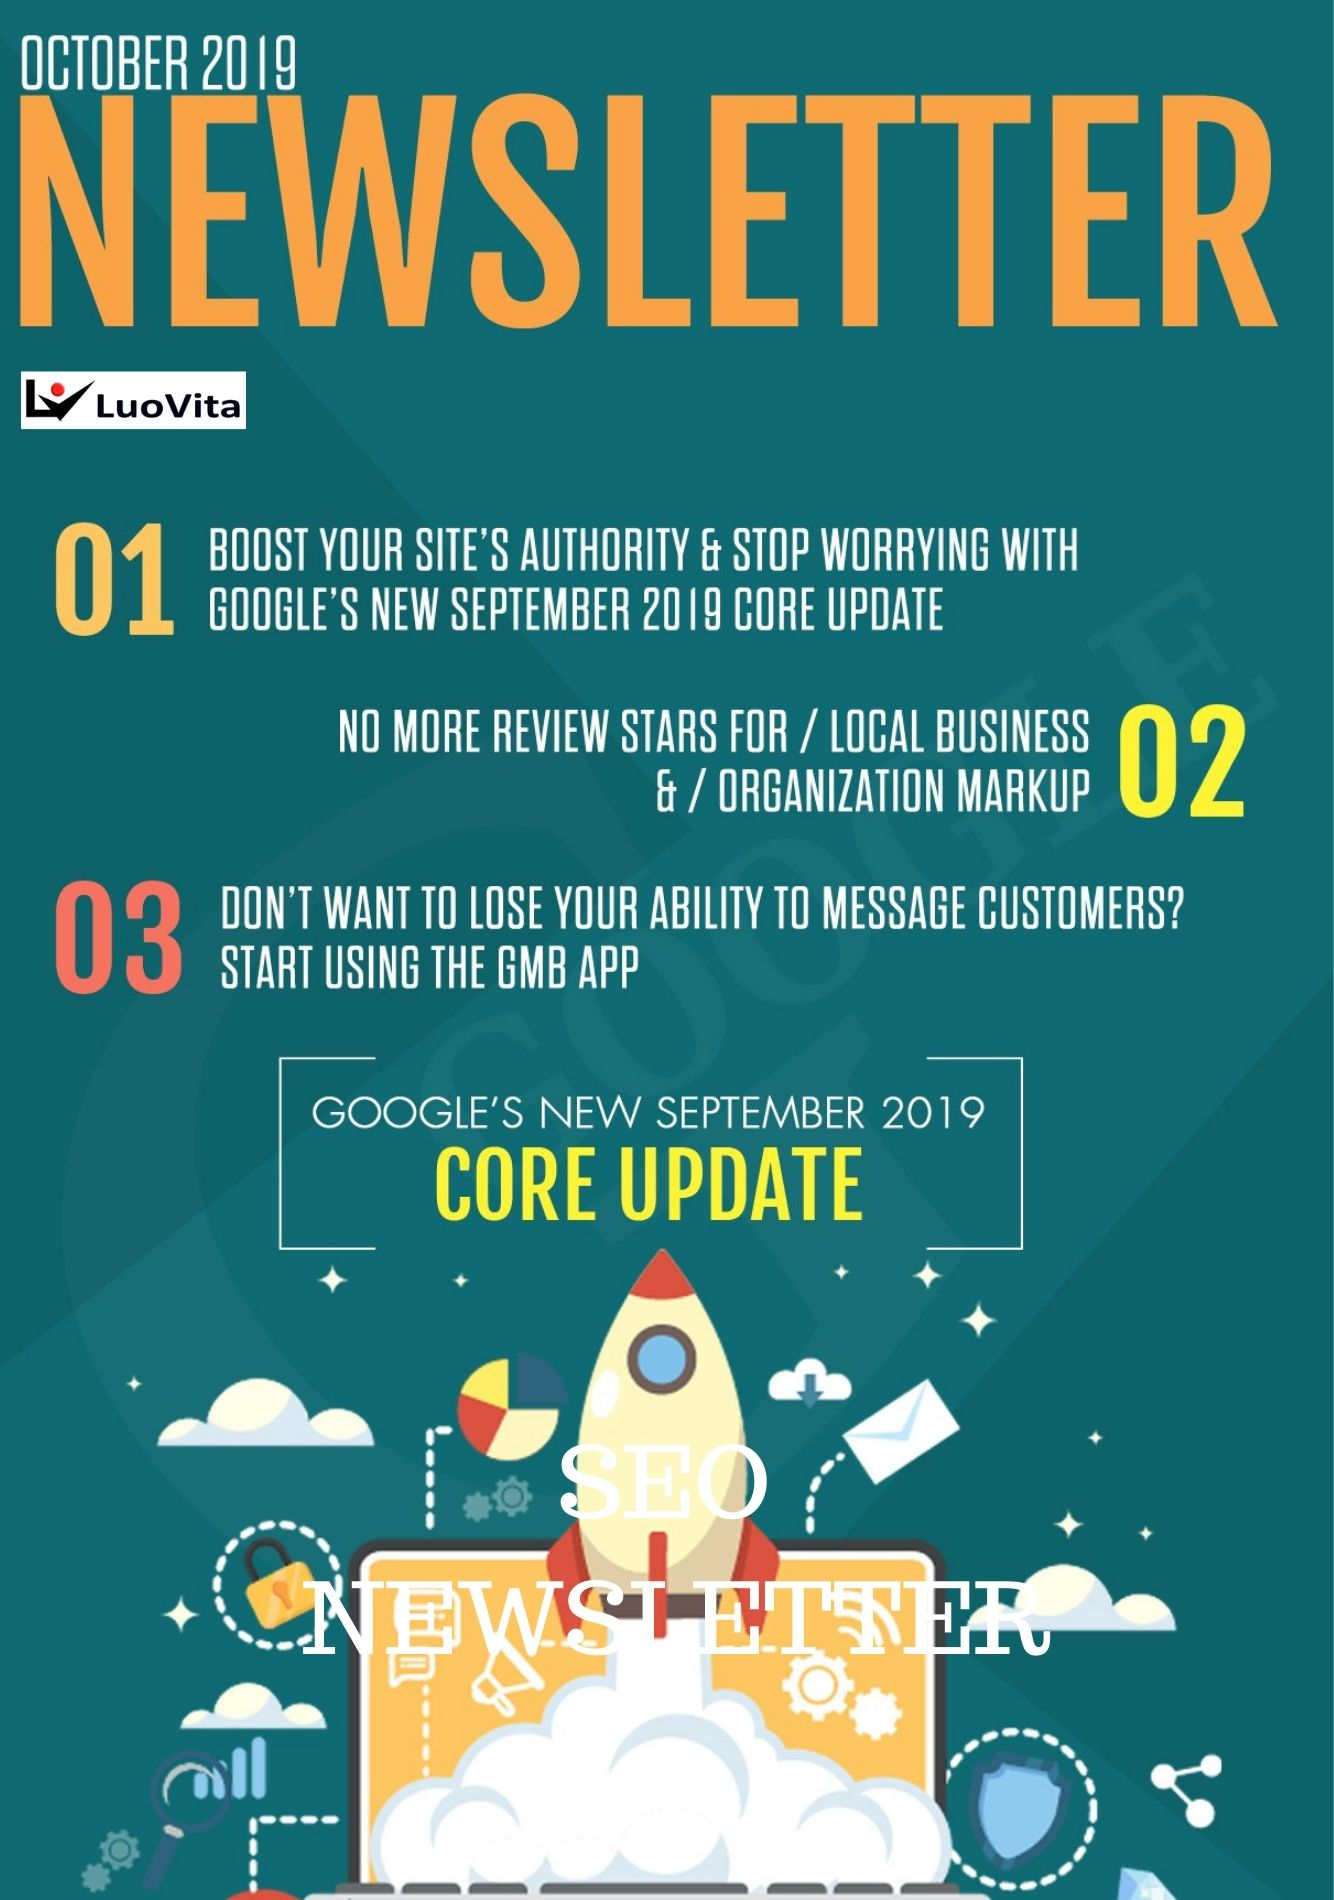 Facebook and Instagram Likely to Hide Like Counts – Newsletter October 2019, what is digital marketing, digital marketing course, check google rank, online business idea, online marketing articles, online marketing courses, how to start online marketing, social media marketing, facebook marketing, instagram marketing, what is smo, smo tools, social media marketing plan, social media campaign ideas, website traffic checker, facebook ads, instagram ads, auto likes free, how can i get facebook likes, how to increase facebook likes, how to promote in facebook, Now Facebook says it may remove Like counts